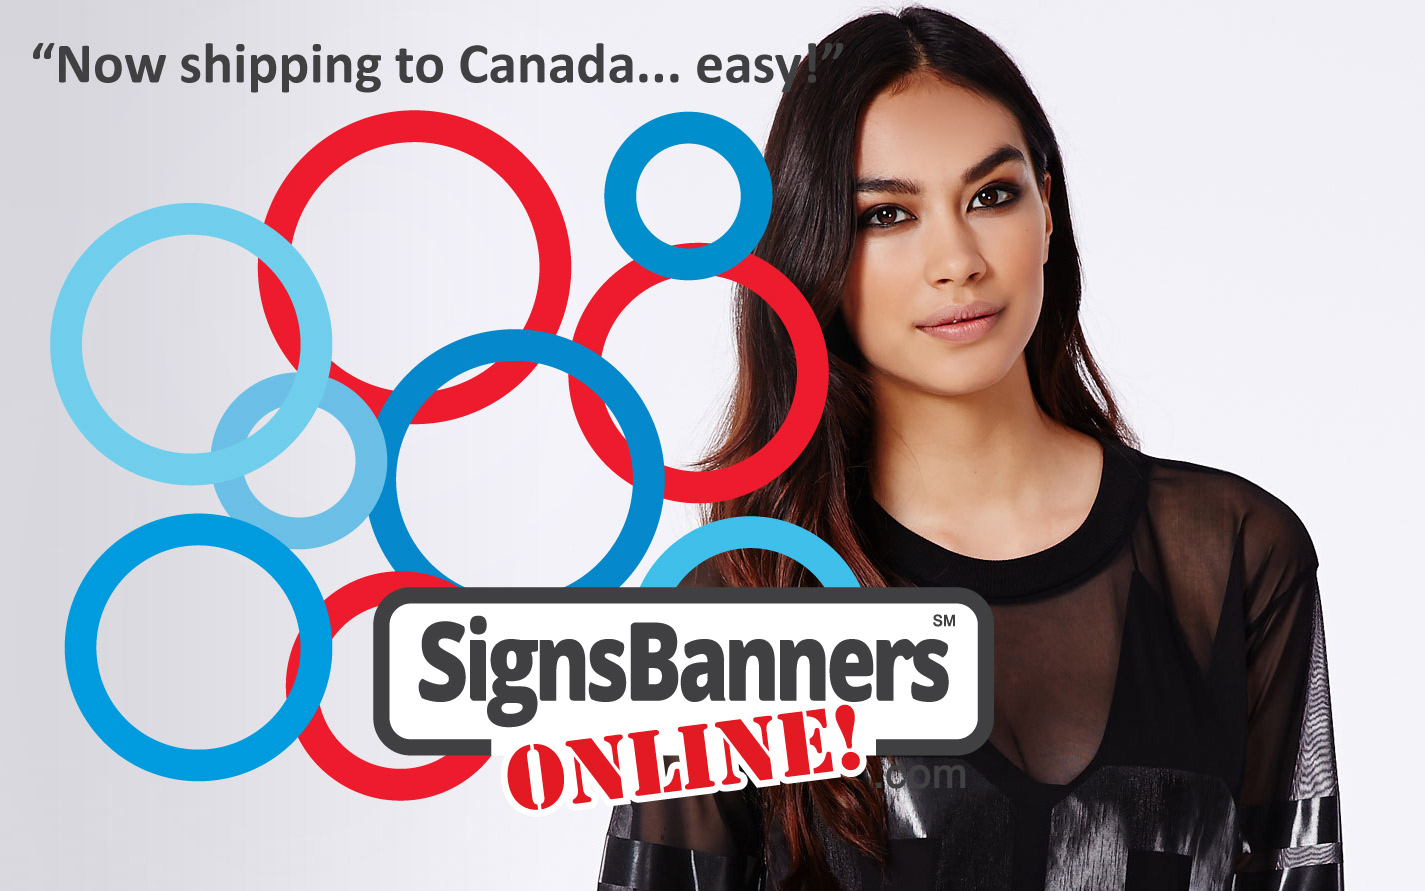 Now shipping to Canada easy Signs Banners Online